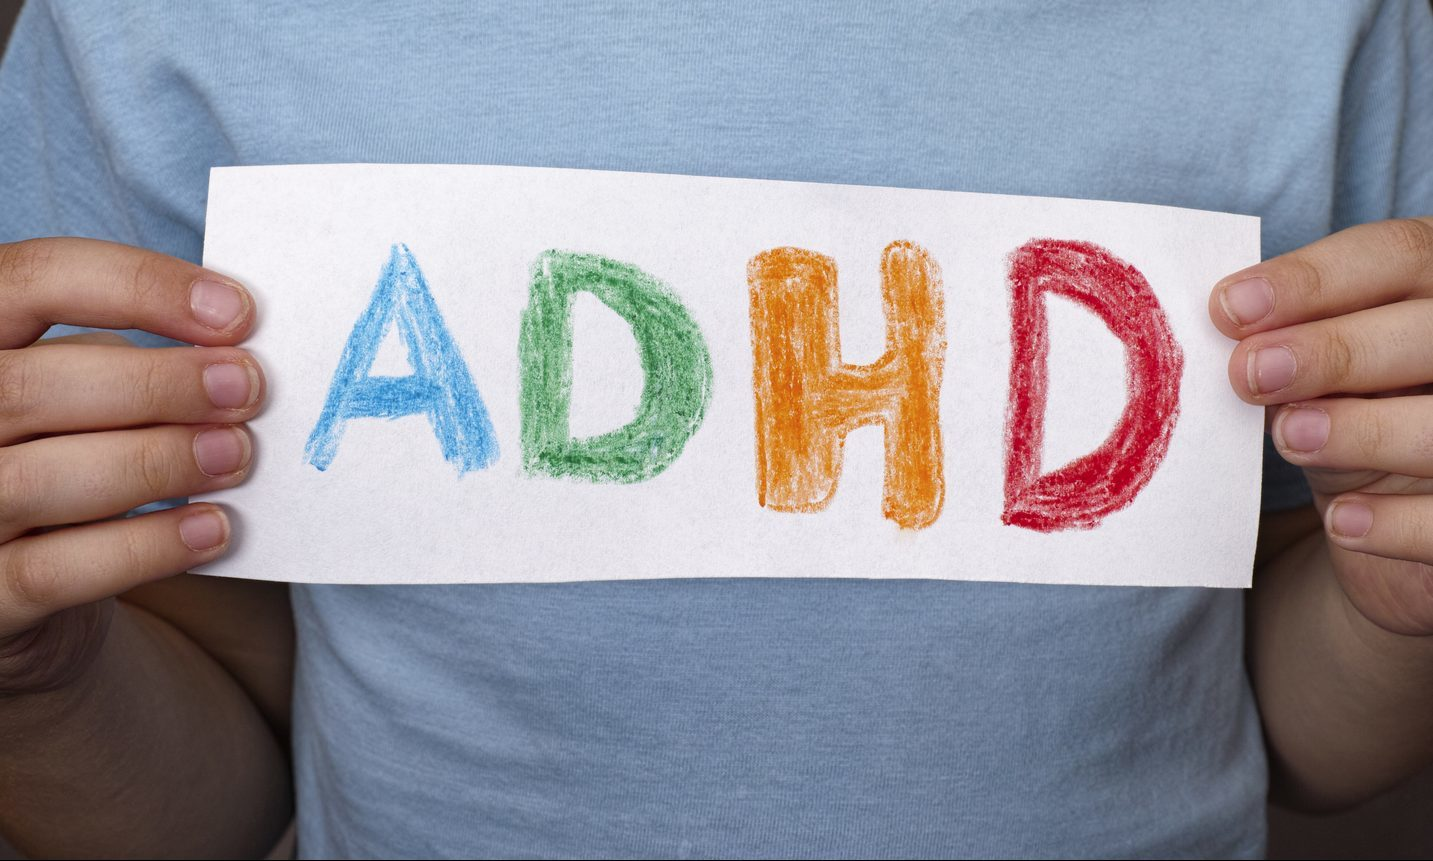 The teacher believes ADHD in adults may be frequently misdiagnosed as anxiety or depression.